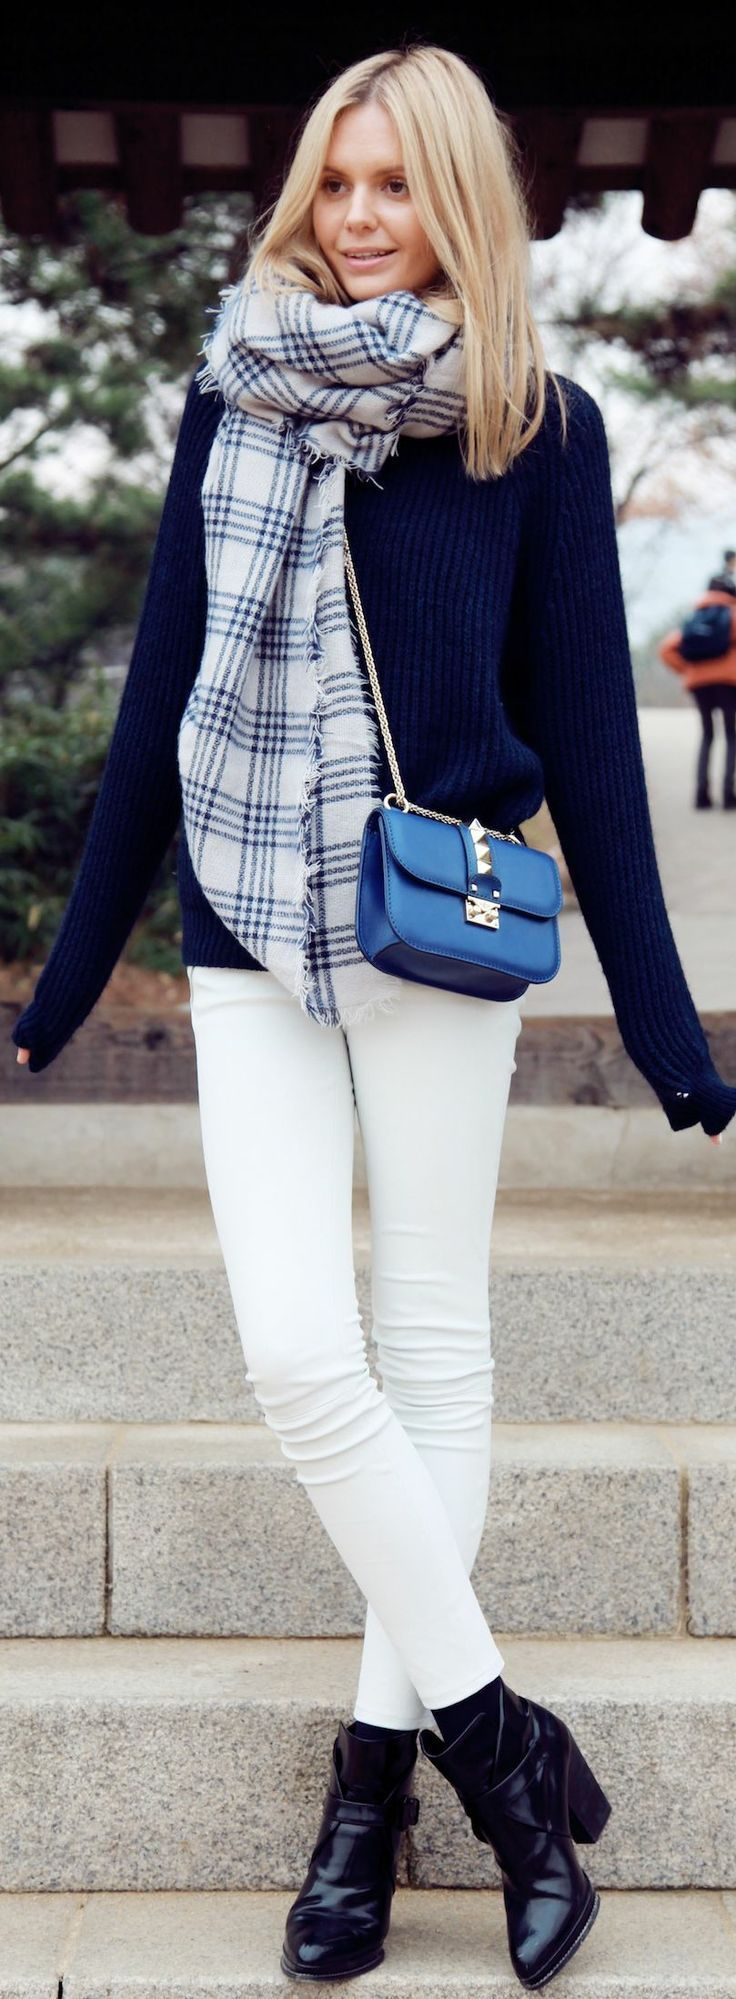 Como usar calças brancas no inverno | How to wear white pants in the winter